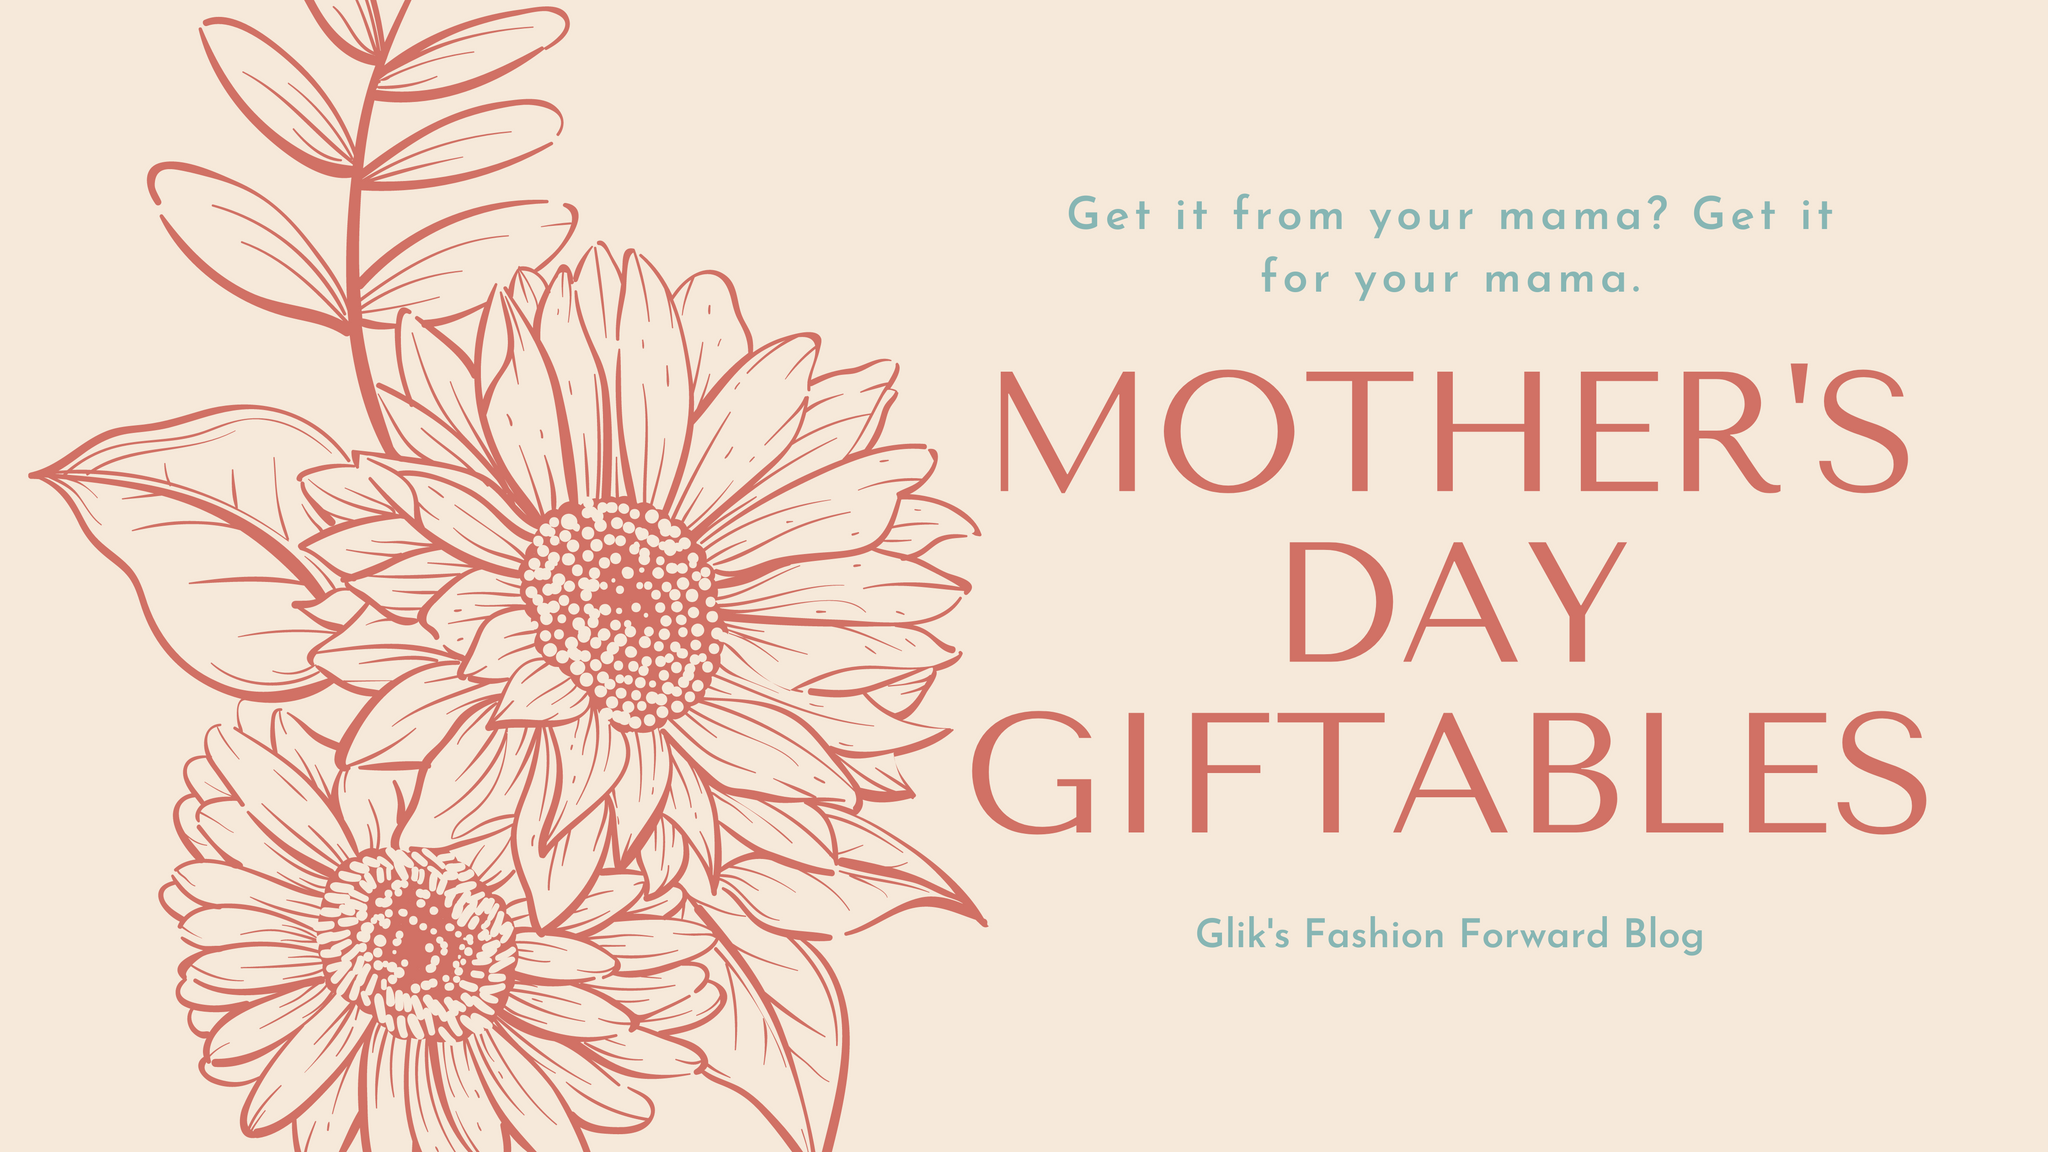 Mother's Day Giftables